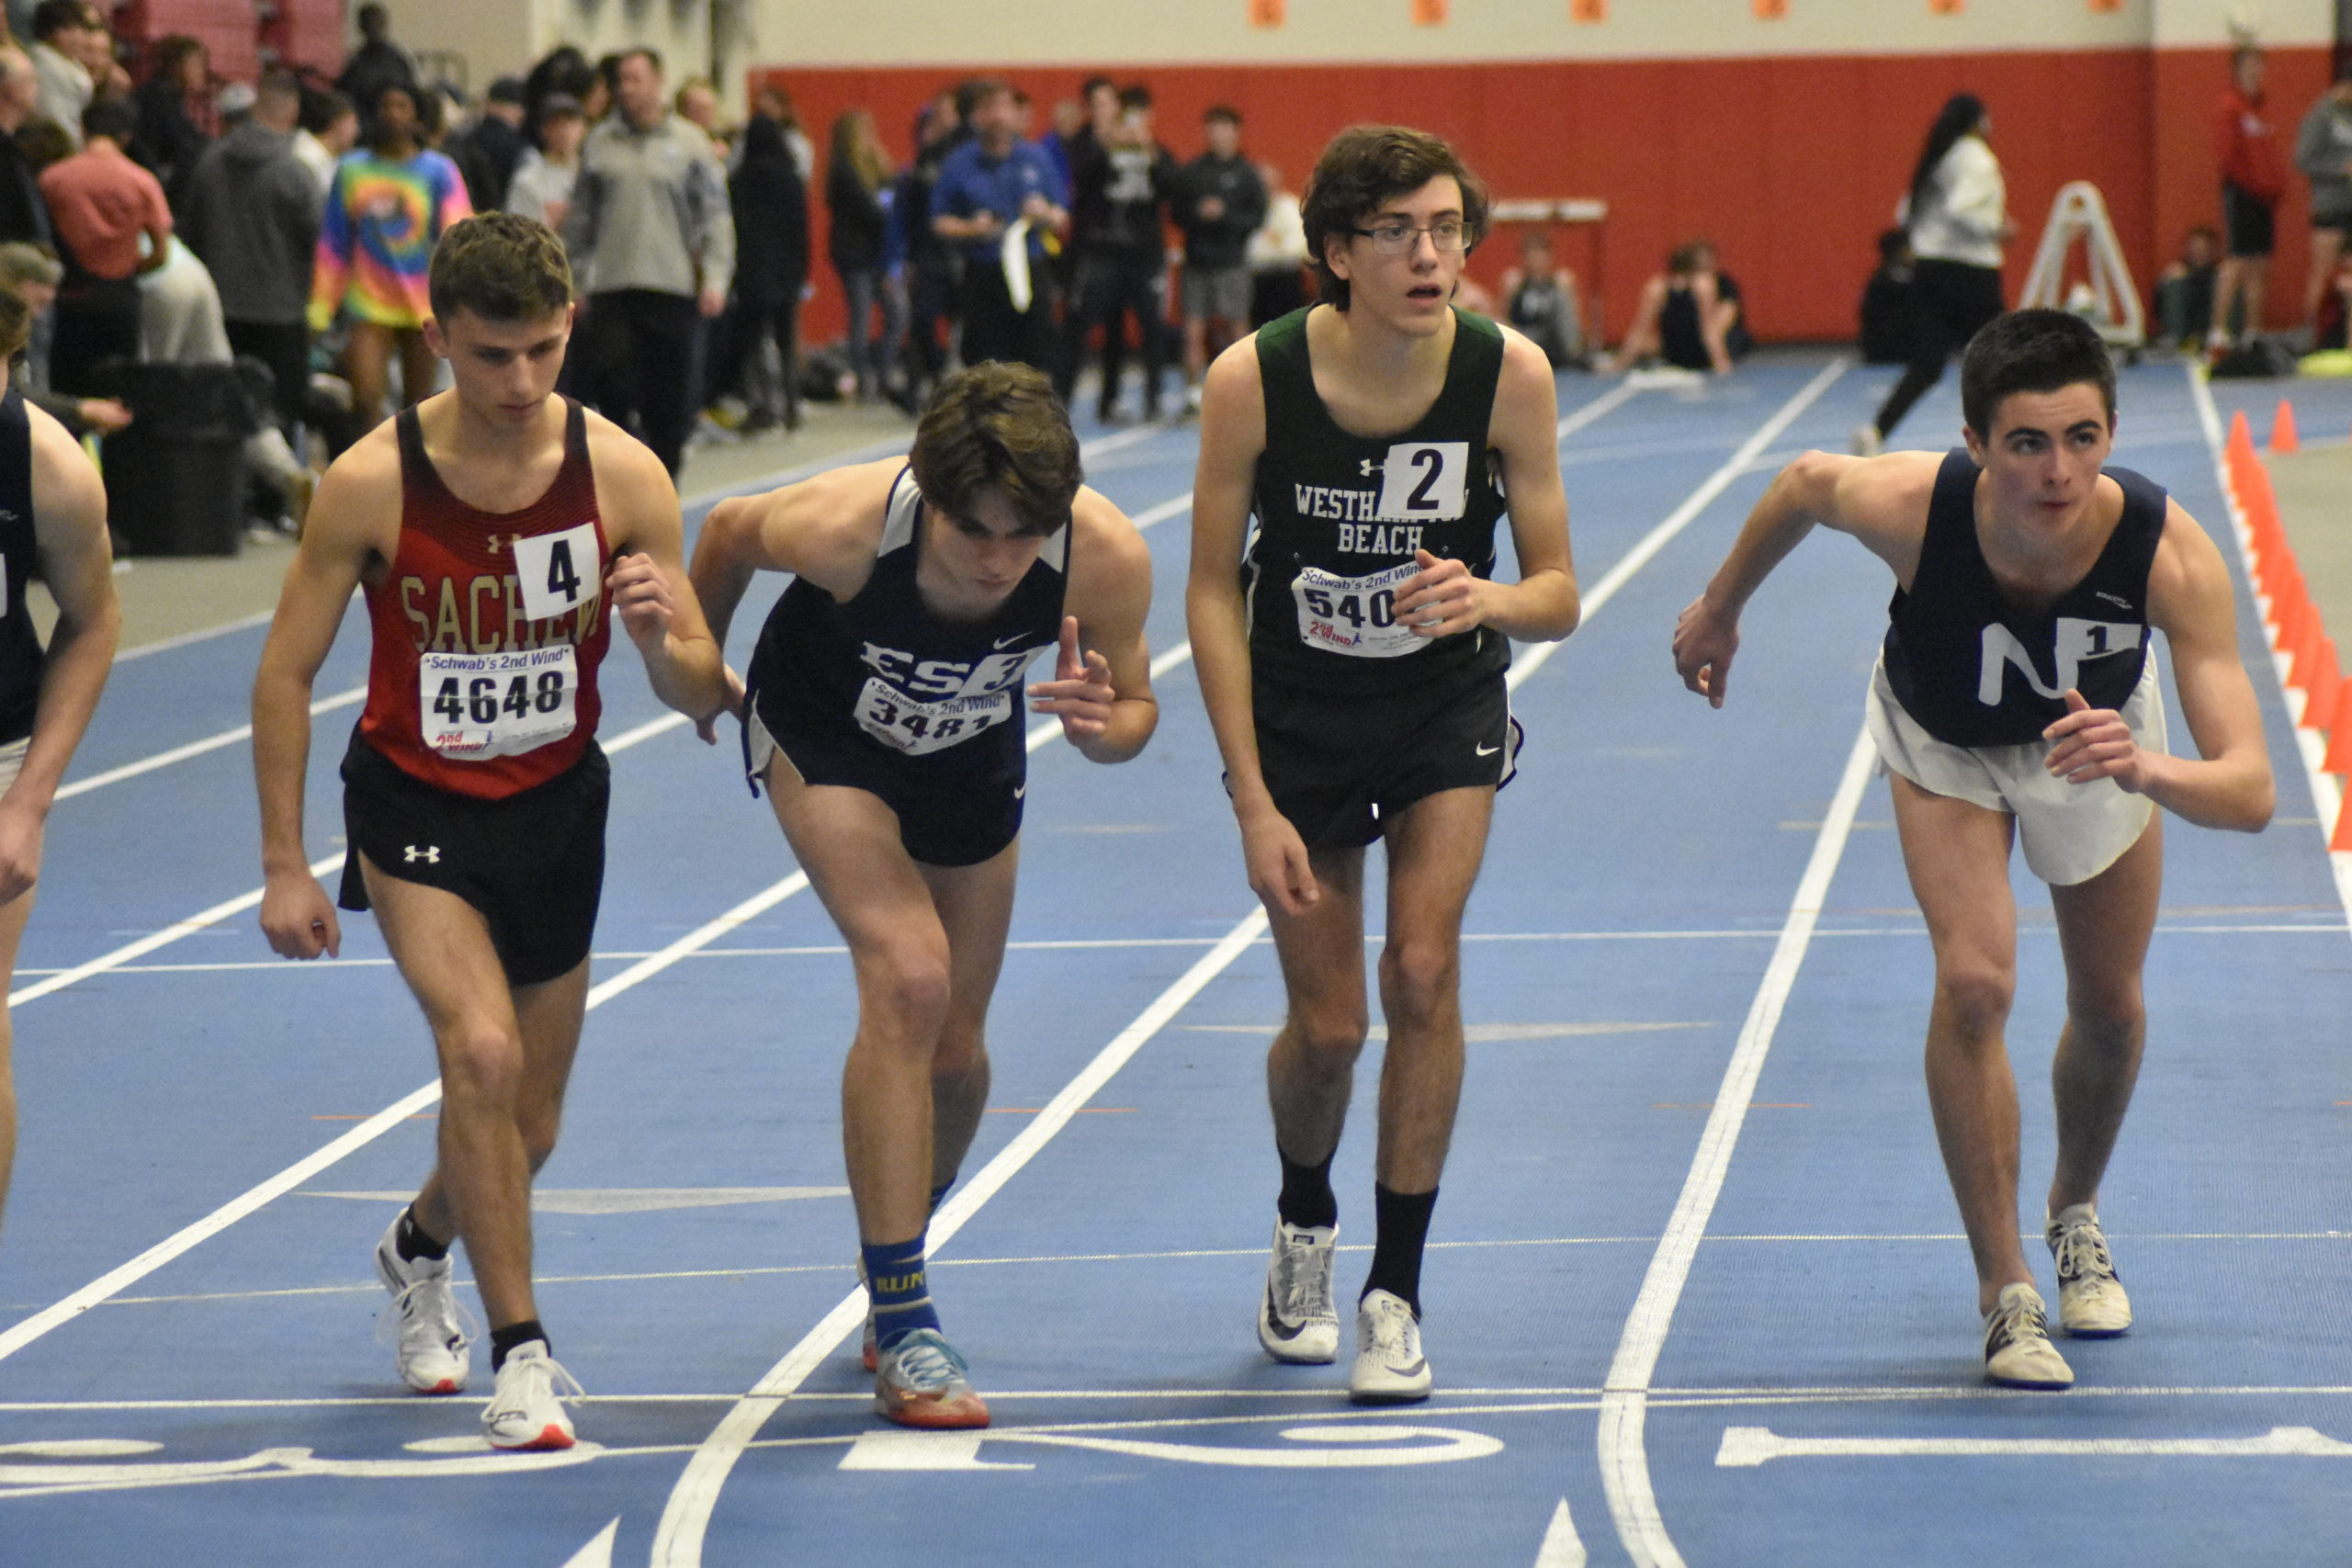 Gavin Ehlers of Westhampton Beach awaits the gun at the start of the 3,200-meter race.  DREW BUDD